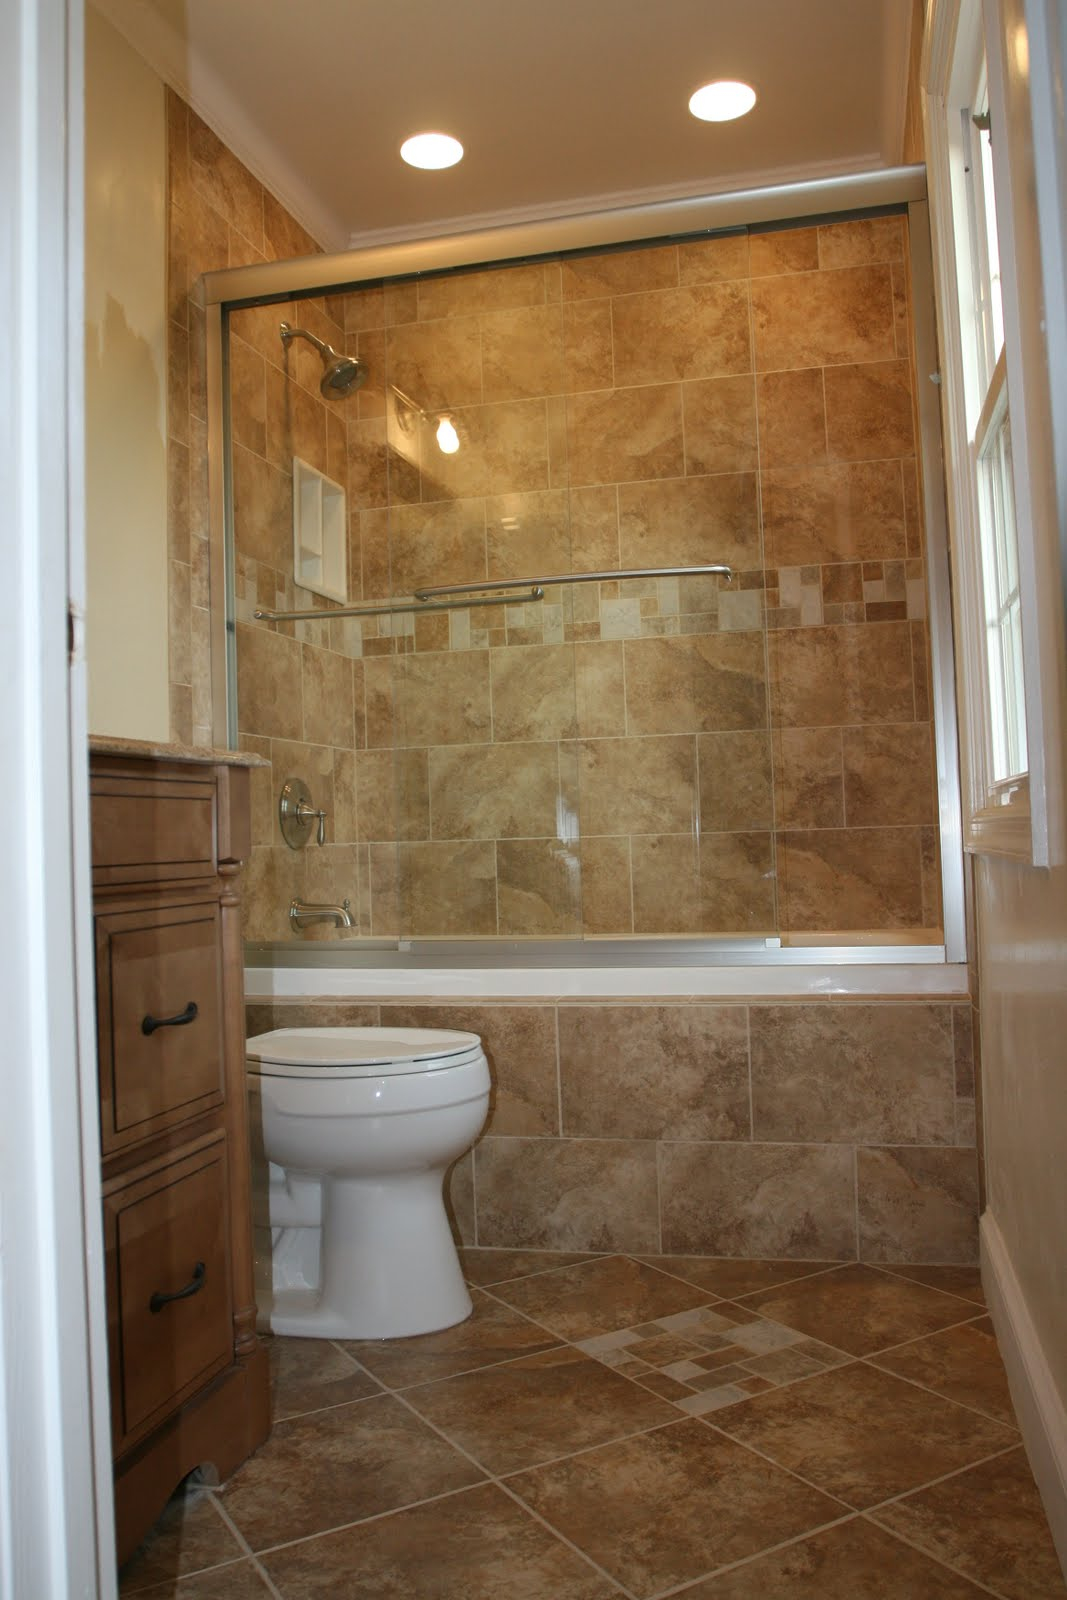 Bathroom remodeling design ideas tile shower niches for Best bathroom remodel ideas